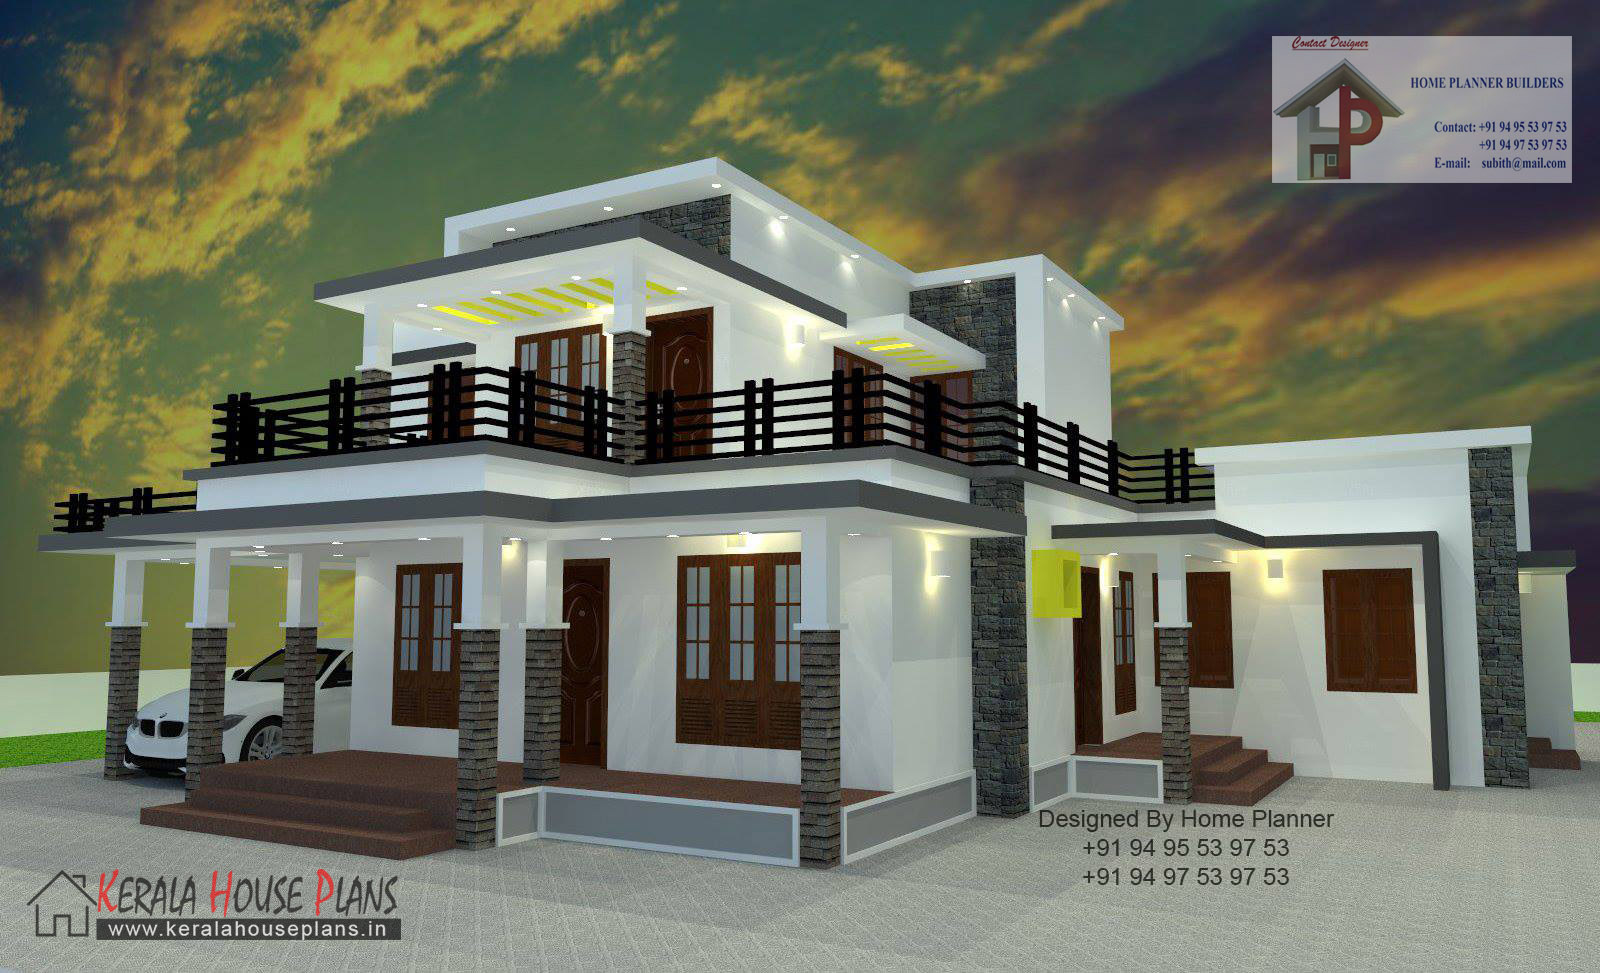 2000 sqft box type house kerala house plans designs for Home design photo